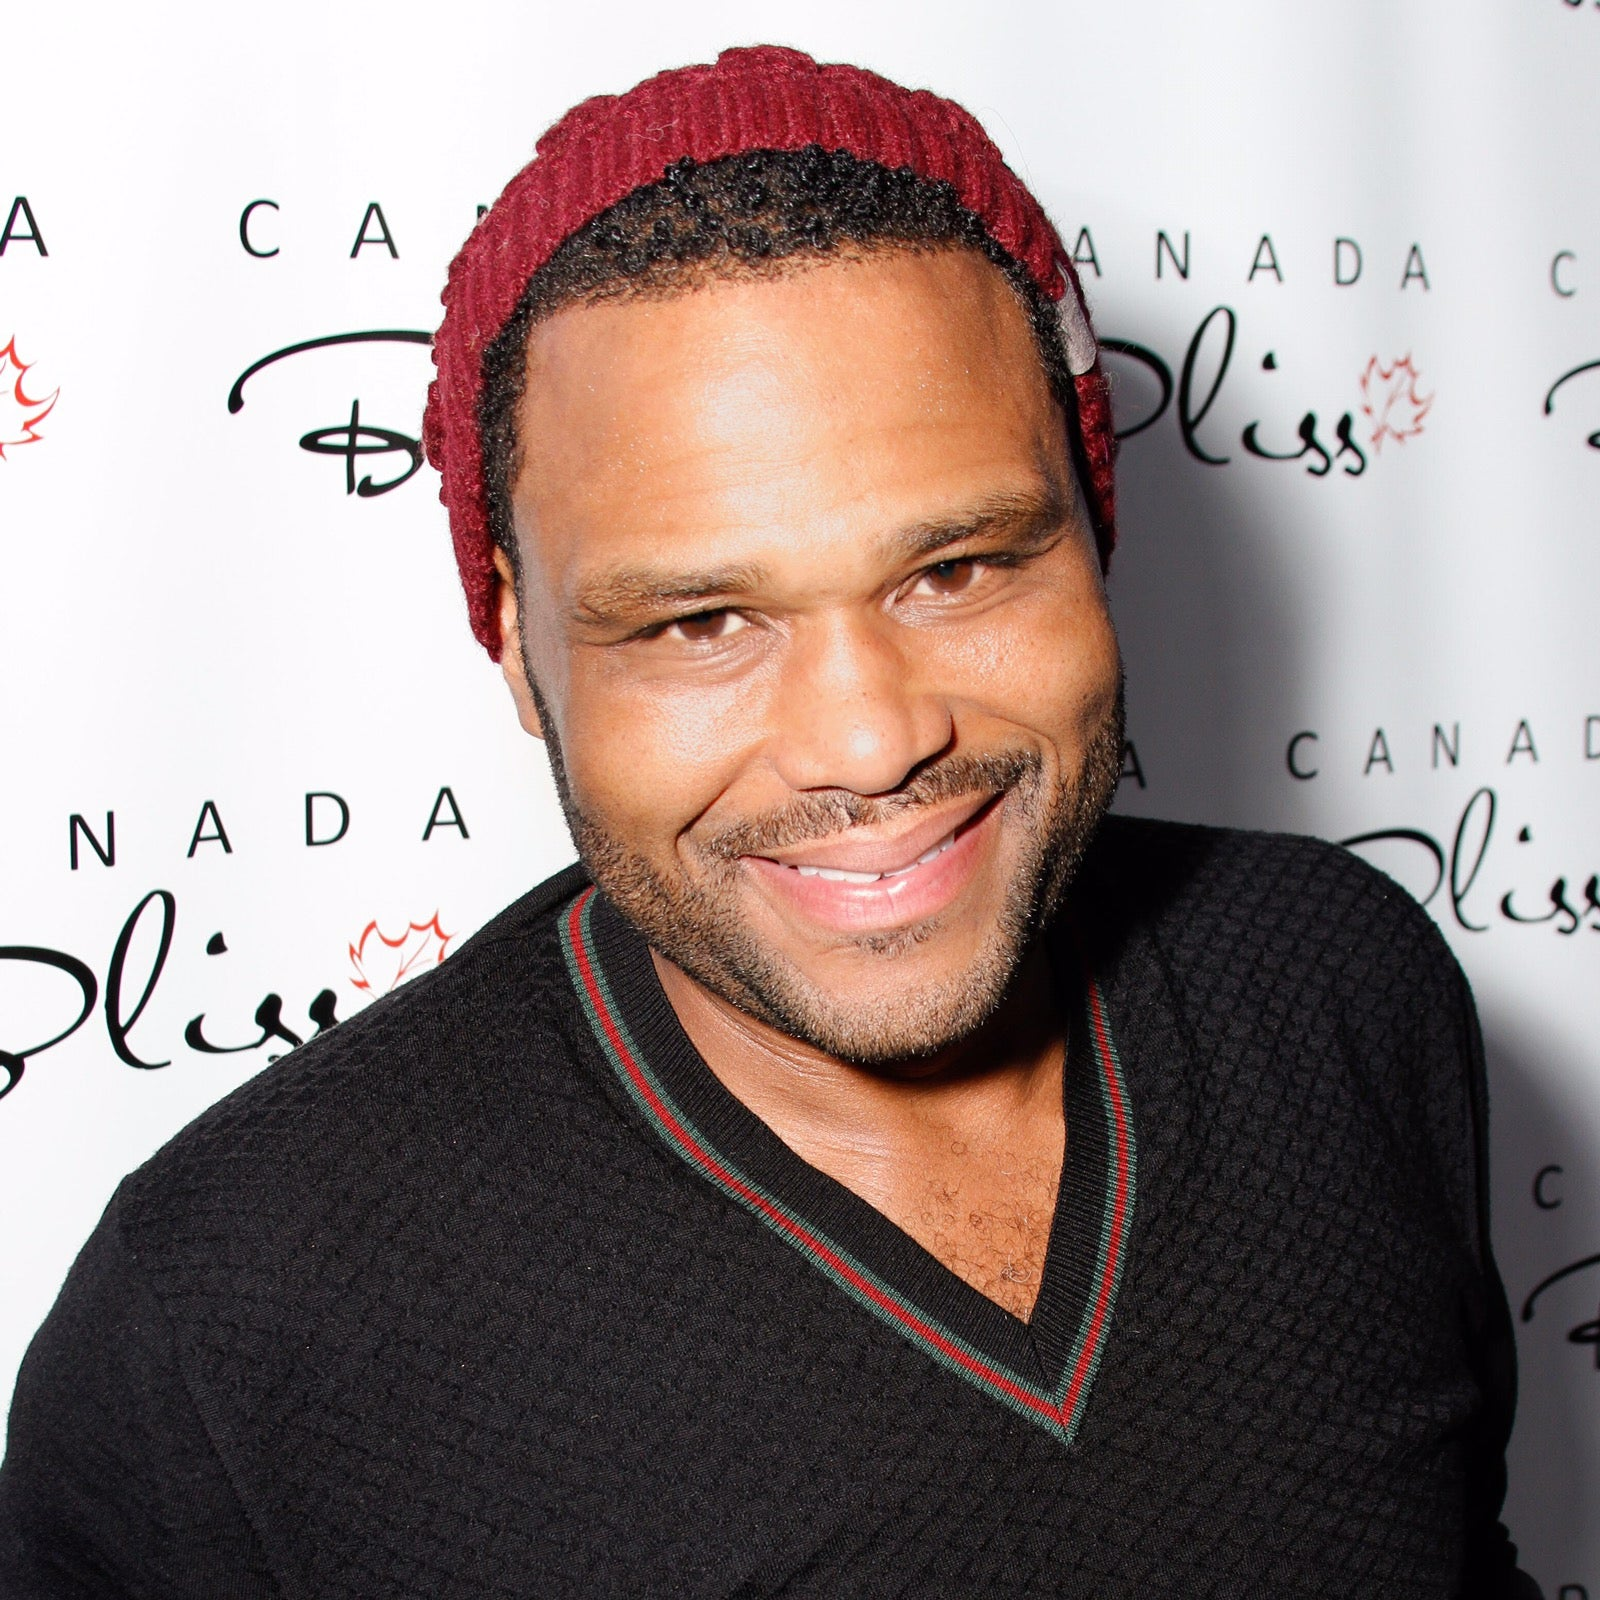 937a545f542 Dreams Hat on Anthony Anderson